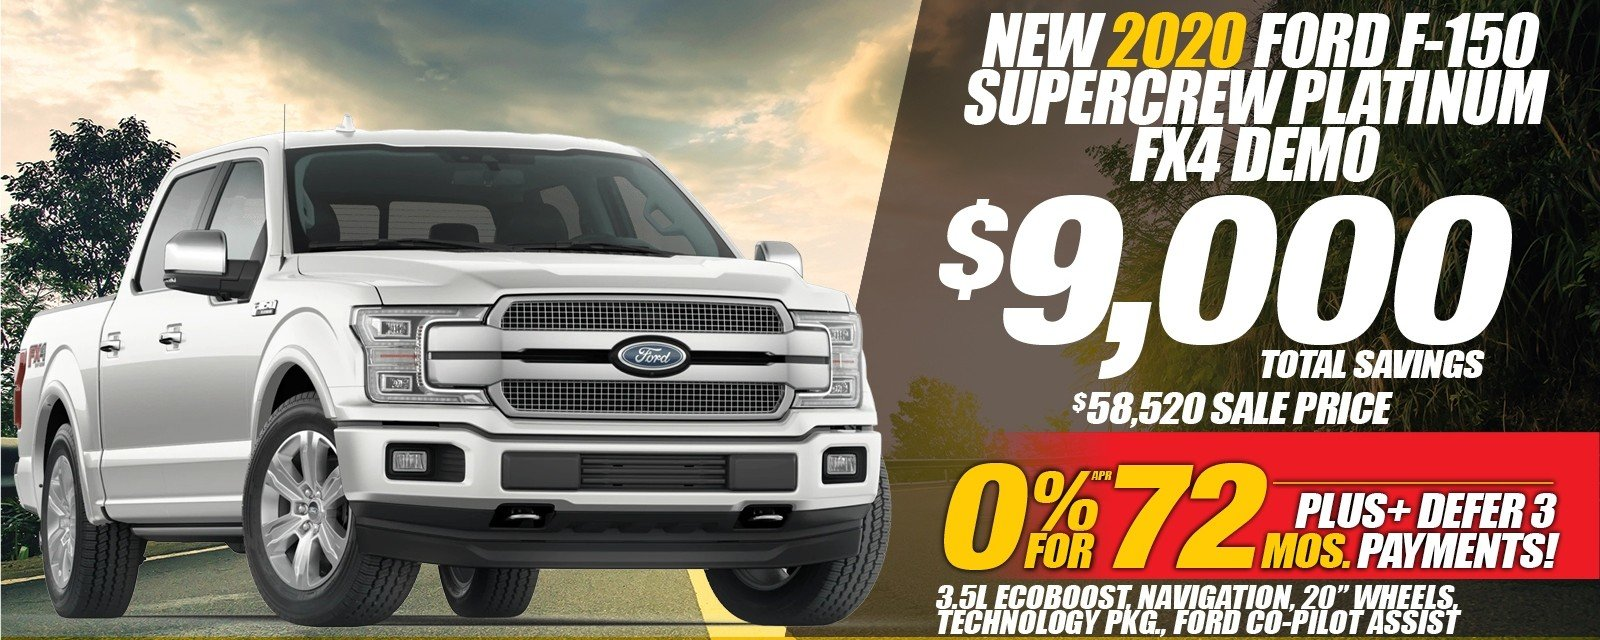 Special offer on 2019 Ford F-150 NEW 2020 FORD F-150 PLATINUM FX4 DEMO SPECIAL